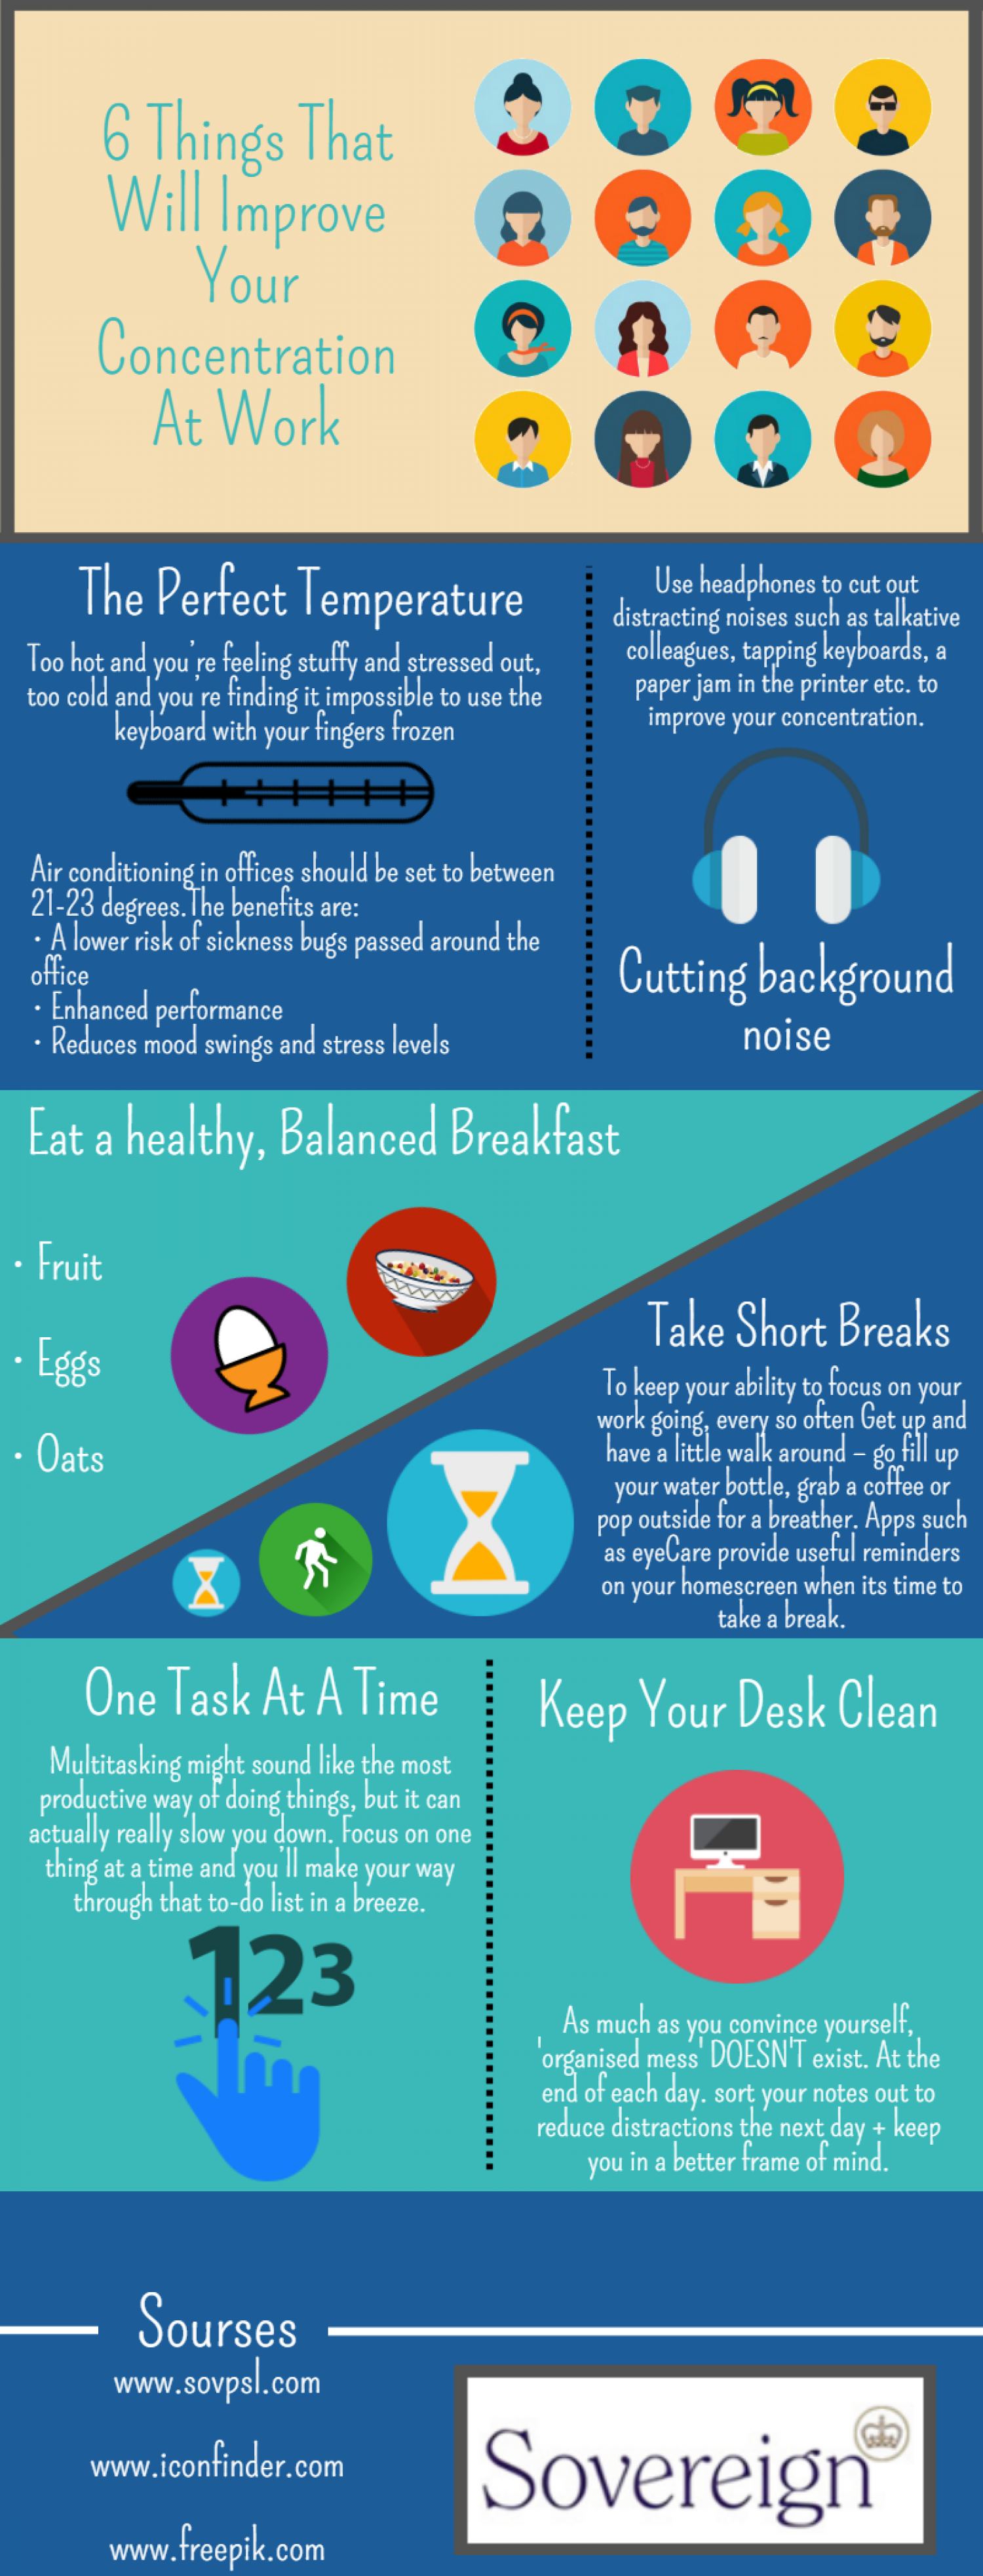 6 tips to improve your concentration at work